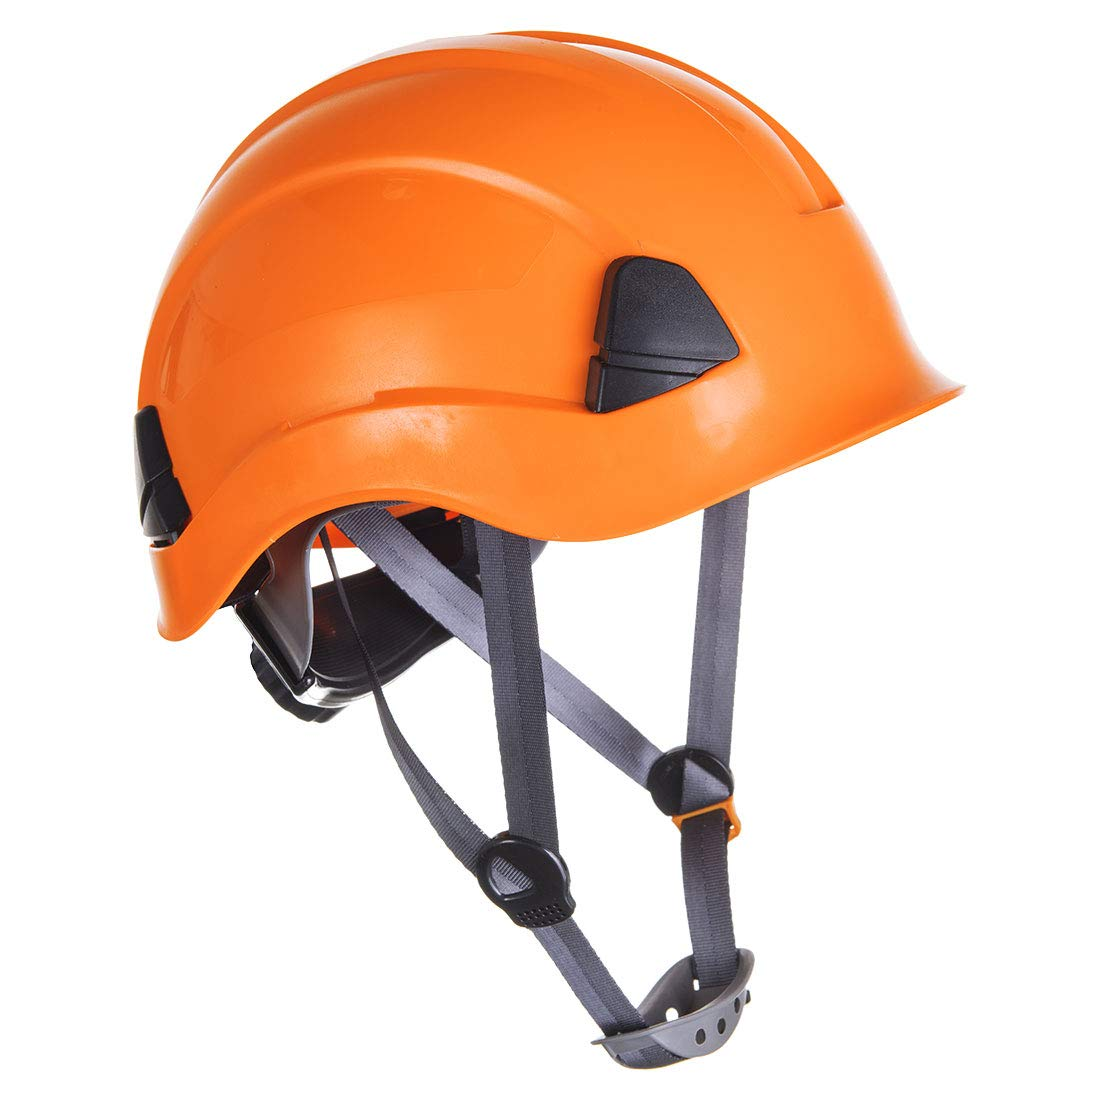 Portwest PS53 Height Endurance PPE Work Hard Hat in Protective HiVis Colors ANSI, Orange